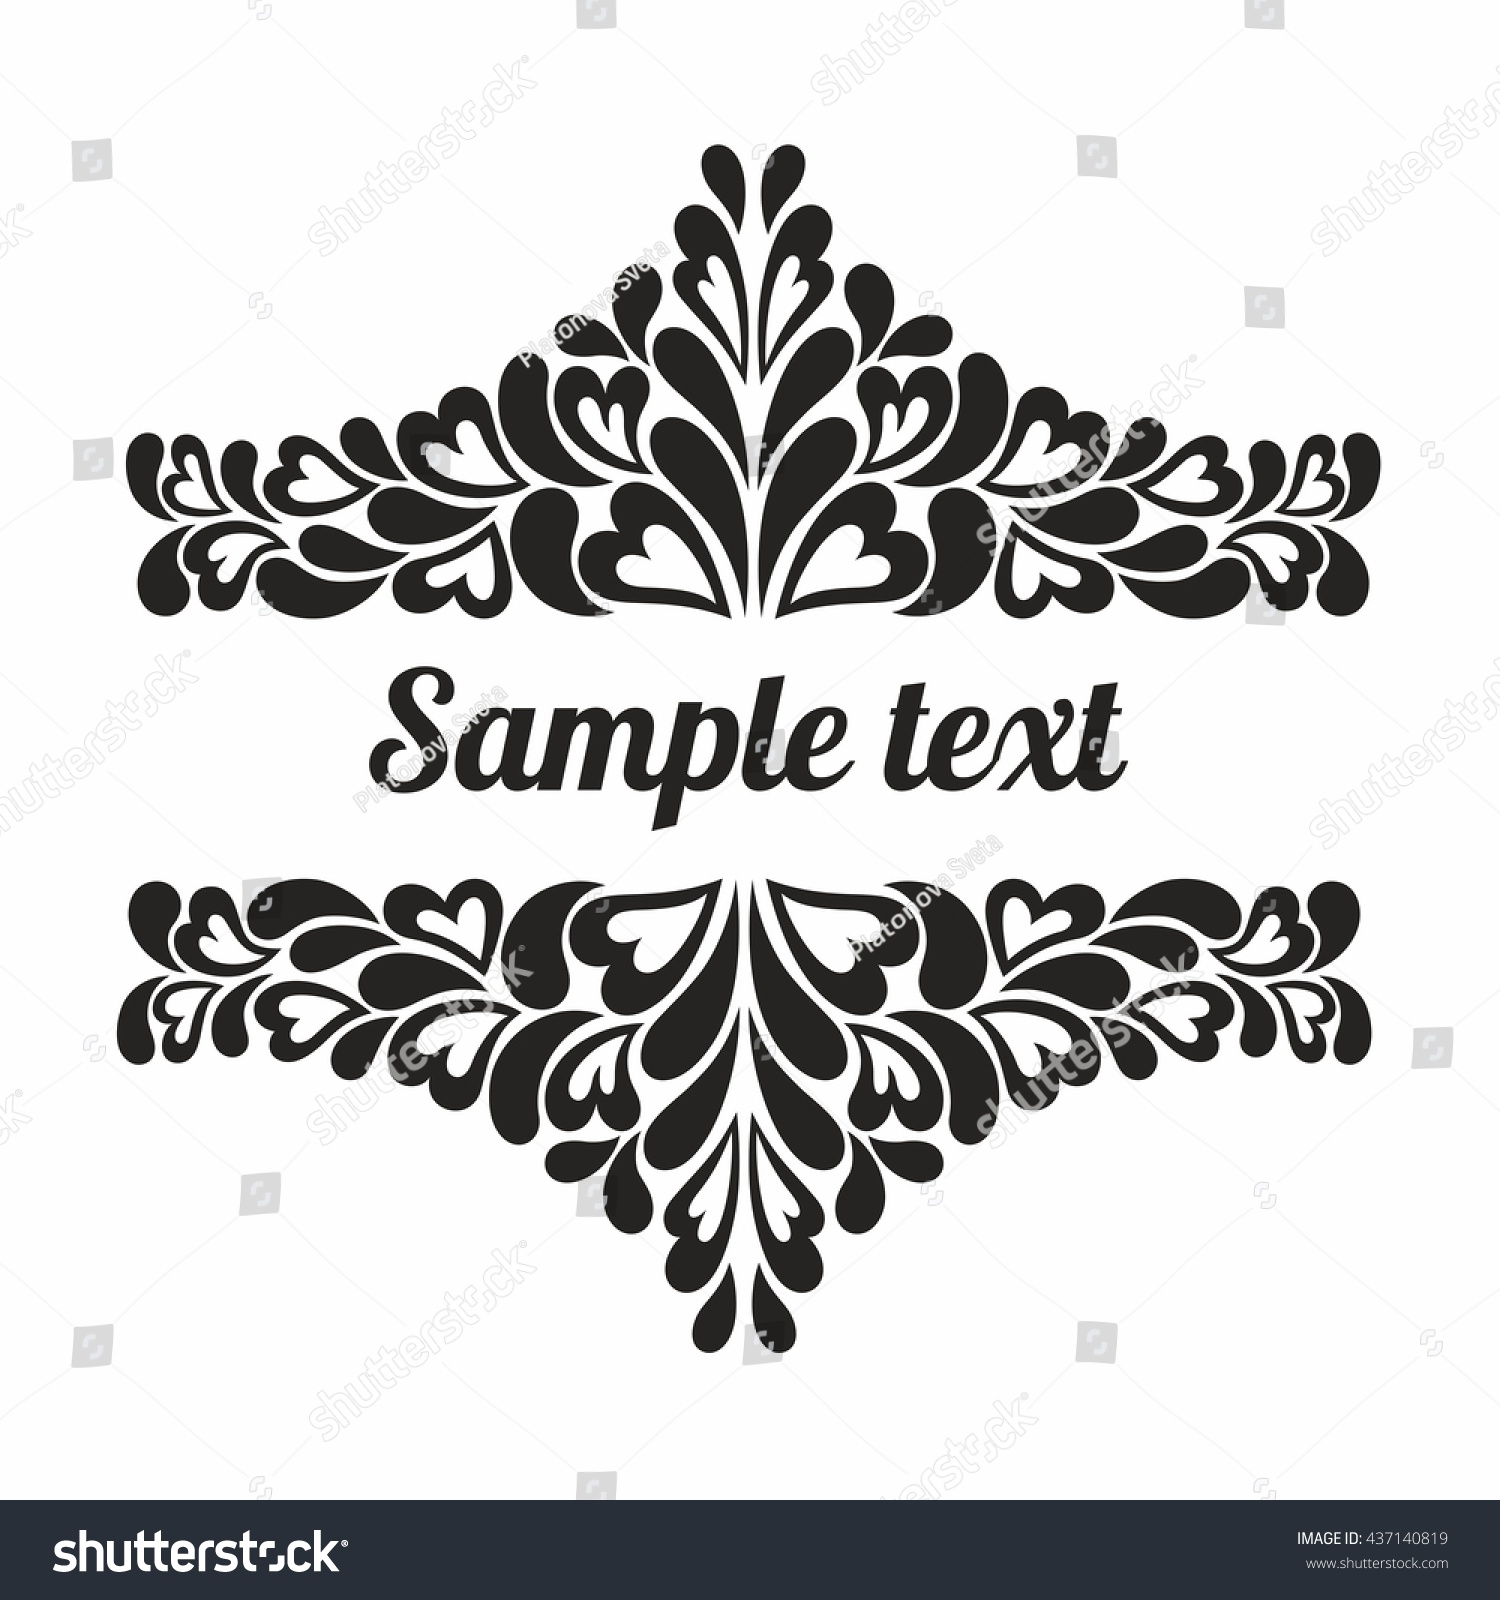 Black frame hearts on white background stock vector 437140819 black frame with hearts on white background for greeting cards wedding invitations vector illustration stopboris Images